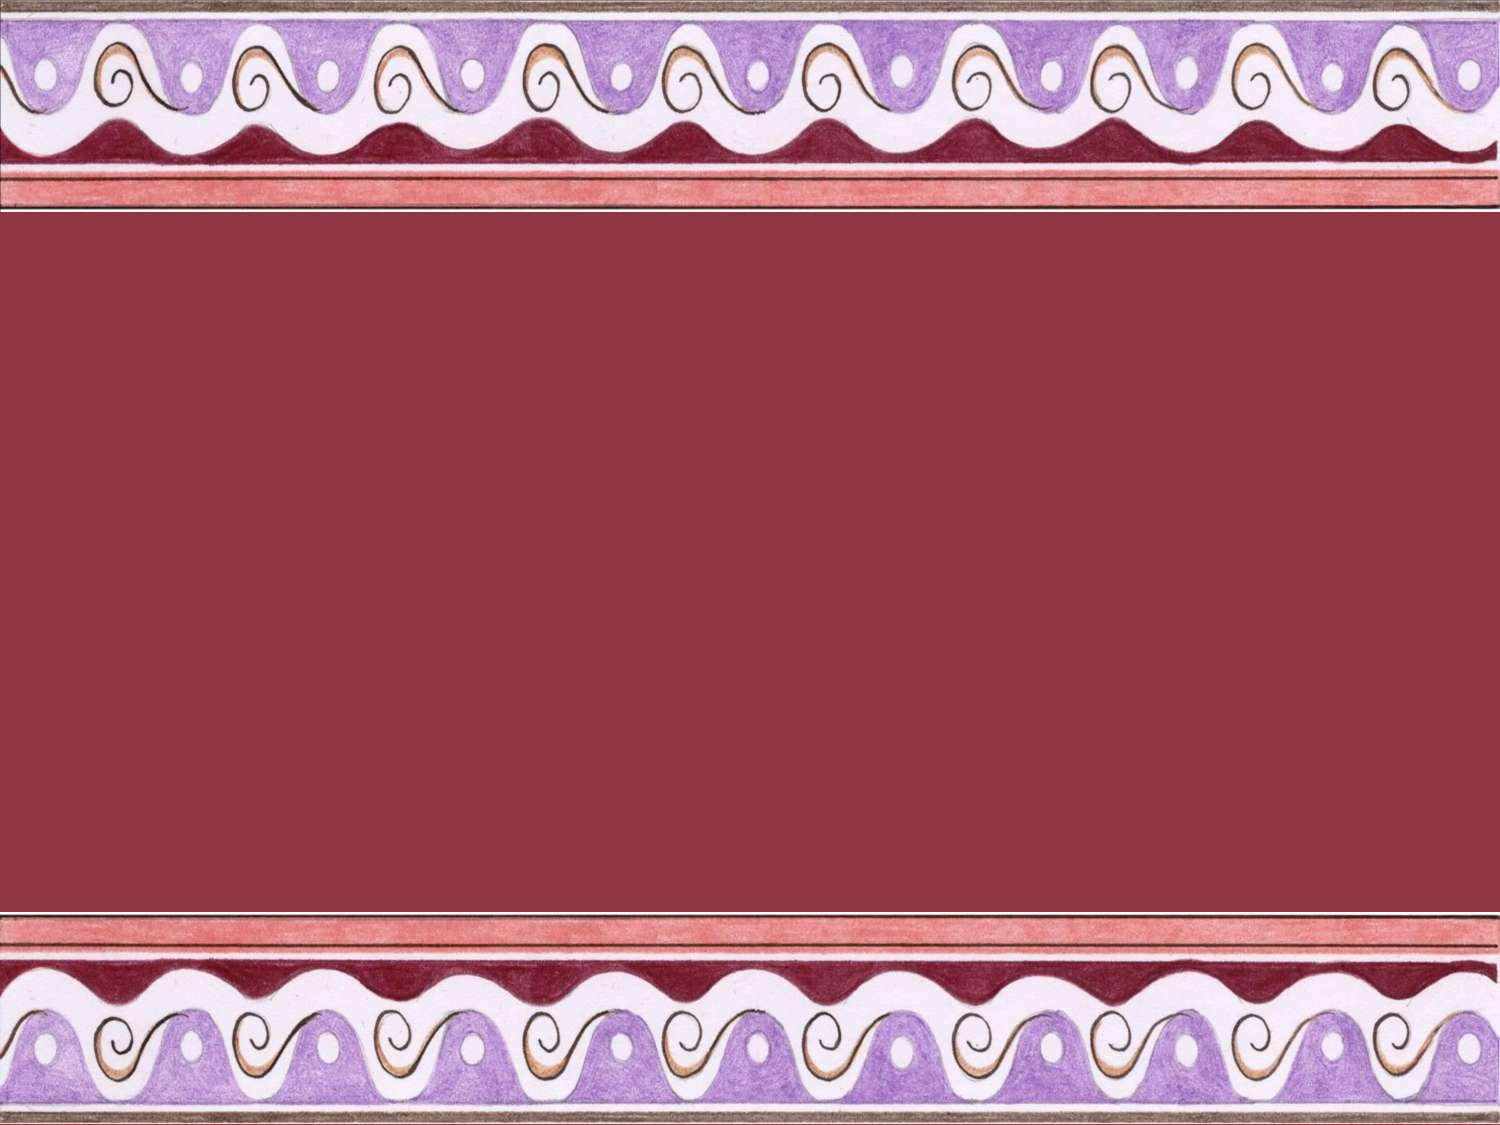 Frames Borders Free PPT Backgrounds for your PowerPoint Templates.